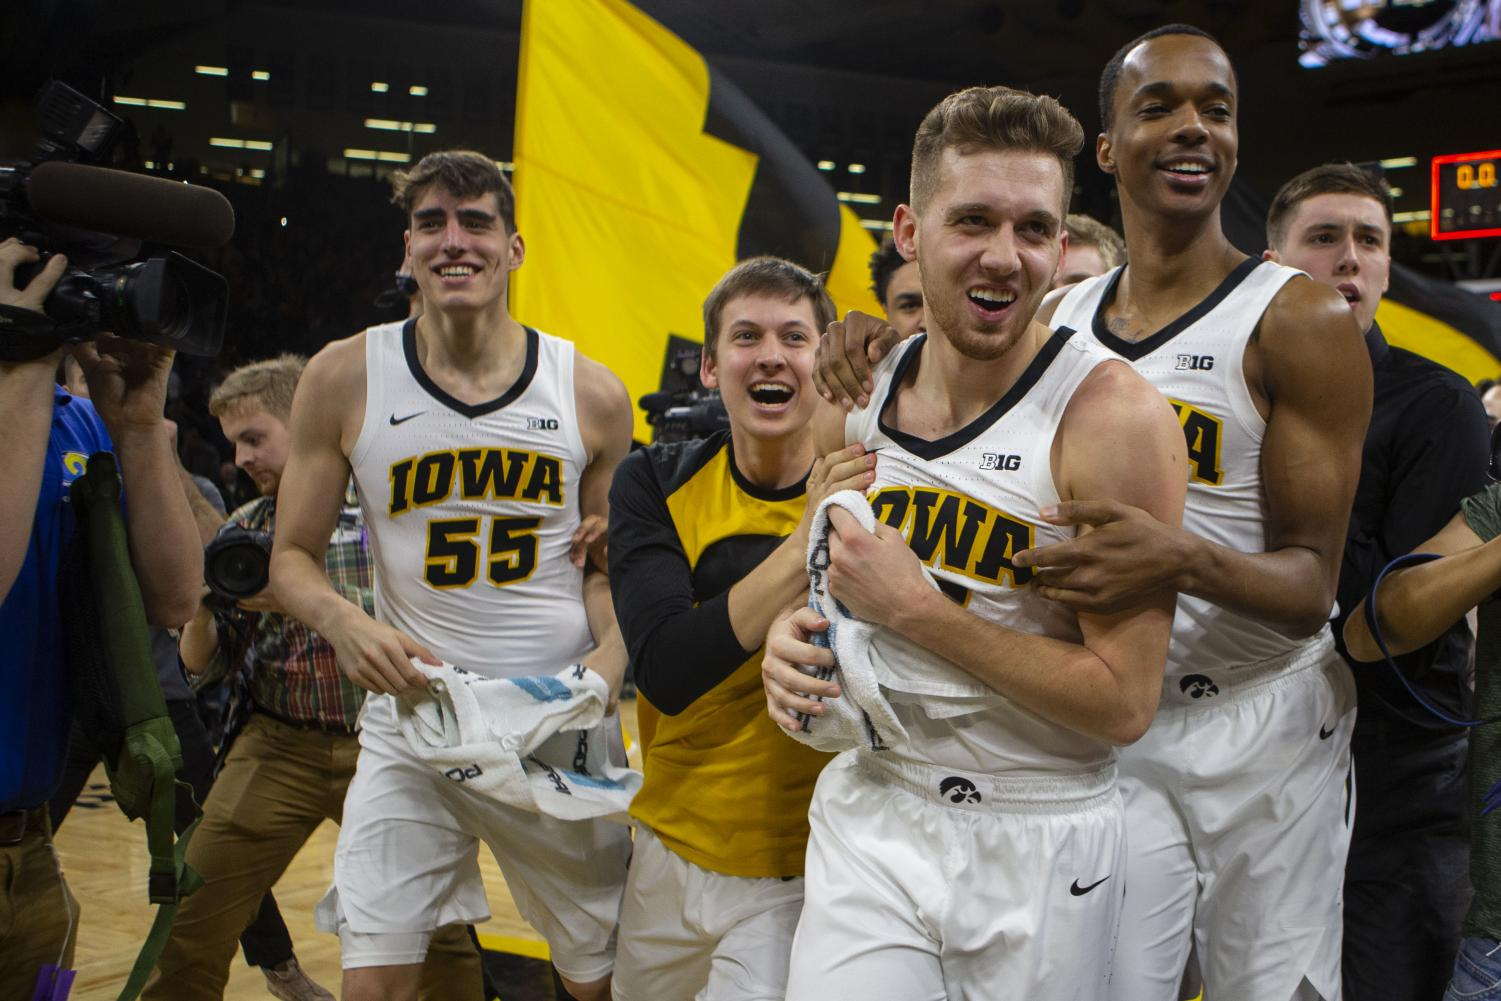 Iowa guard Jordan Bohannon celebrates with teammates after scoring the winning 3-pointer the Iowa/Northwestern men's basketball game at Carver-Hawkeye Arena on Sunday, February 10, 2019. The Hawkeyes defeated the Wildcats, 80-79.